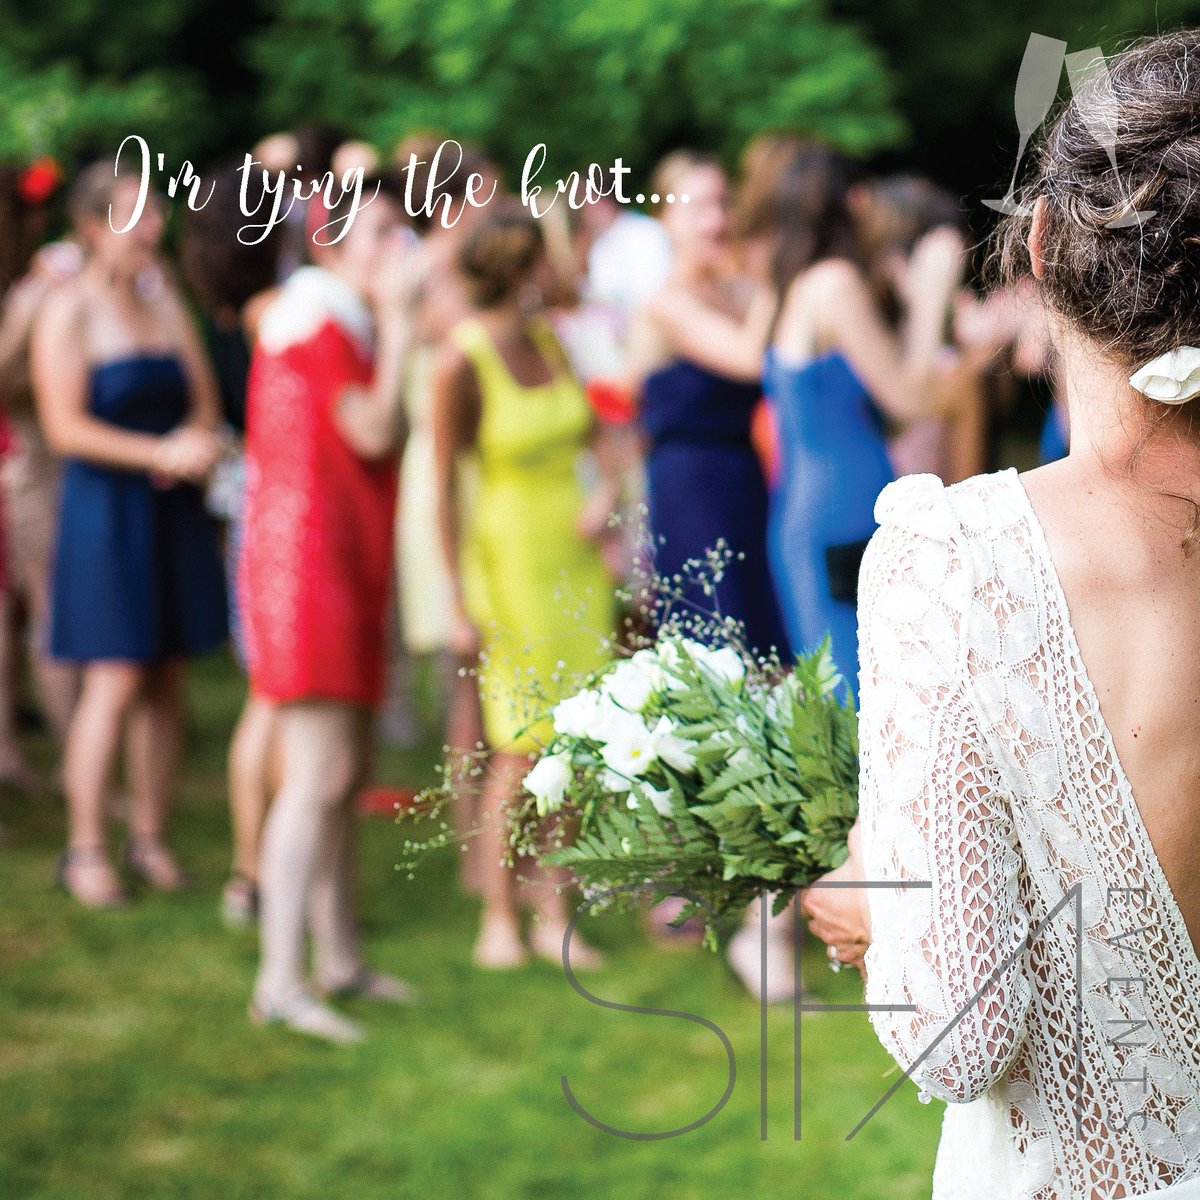 Lets face it, some times DJ's equipment sets just fail, or their song selection is a little more bump-and-grind than Great Aunt Ginger can tolerate.  Be content that our DJ's will do a better job because they are SIFA trained and managed.  #SIFAEvents #DJs #engagementIdea https://t.co/FvwfxD9TnX